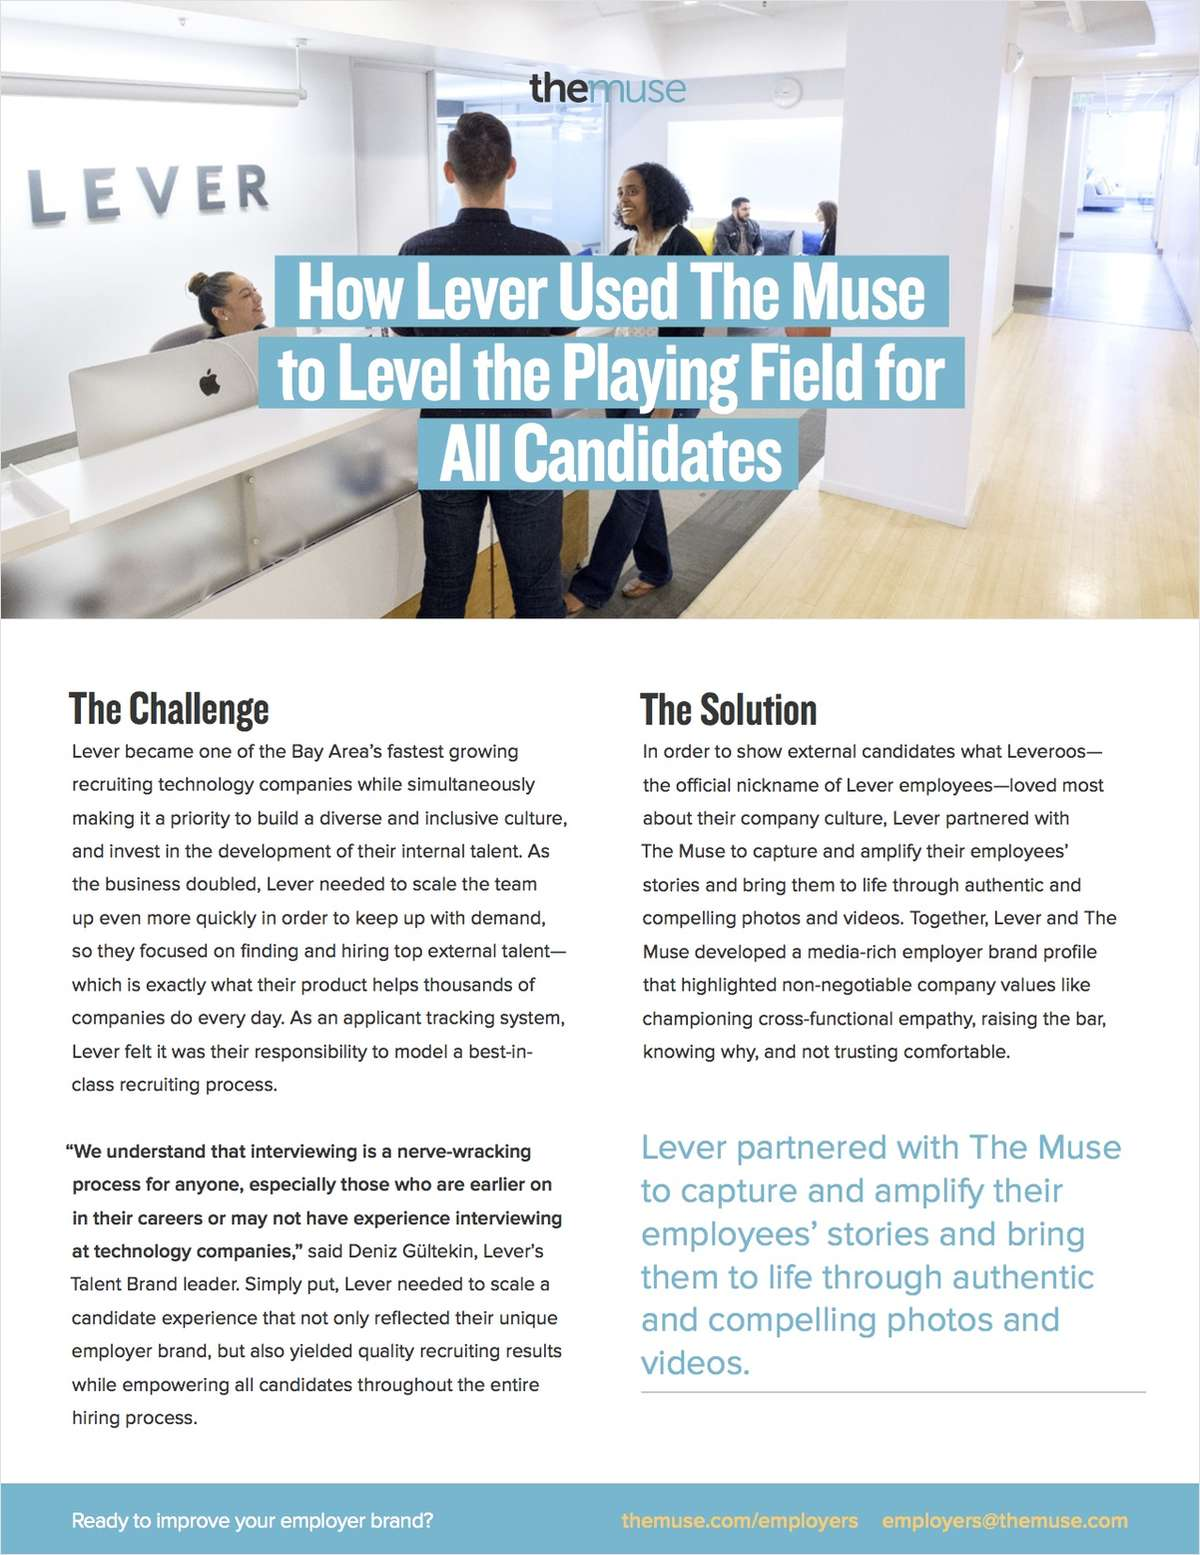 How Lever Improved Their Candidate Experience With The Muse